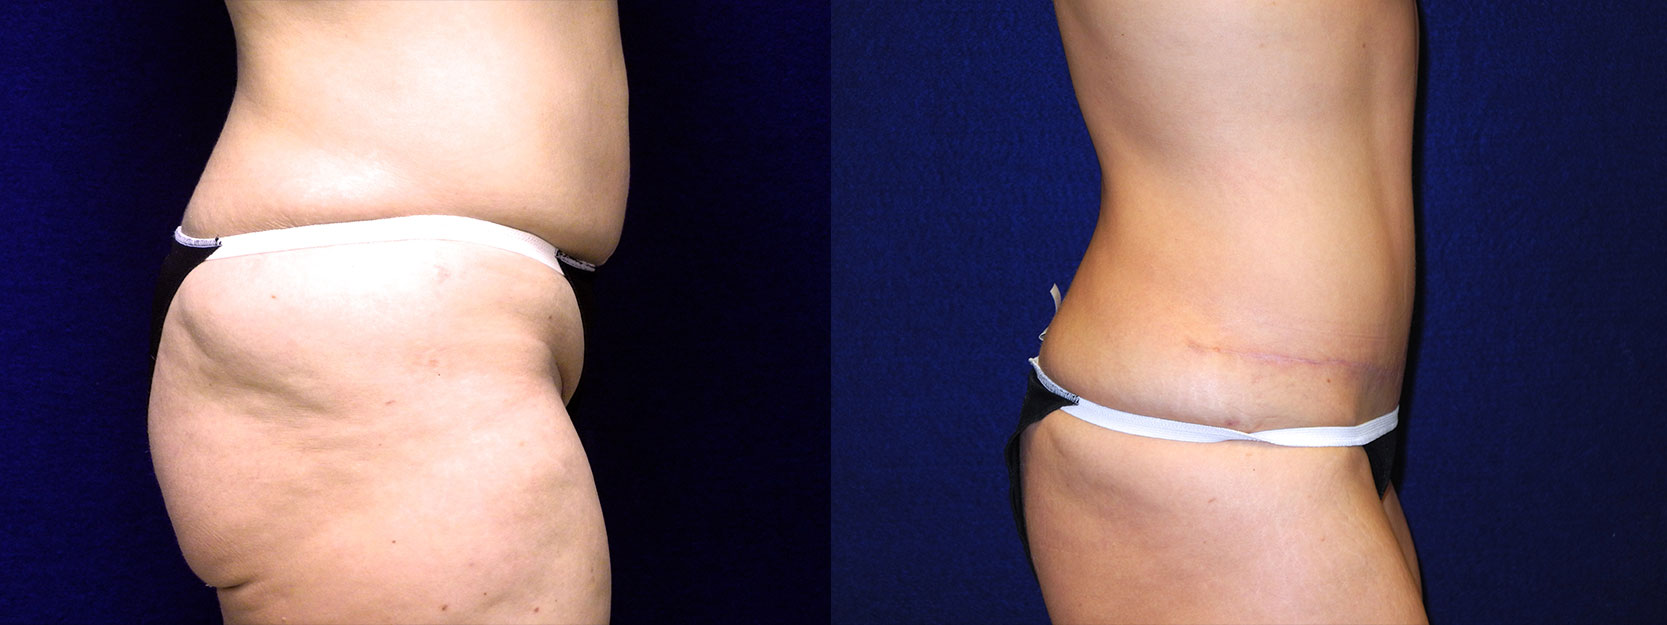 Right Profile View - Tummy Tuck After Weight Loss